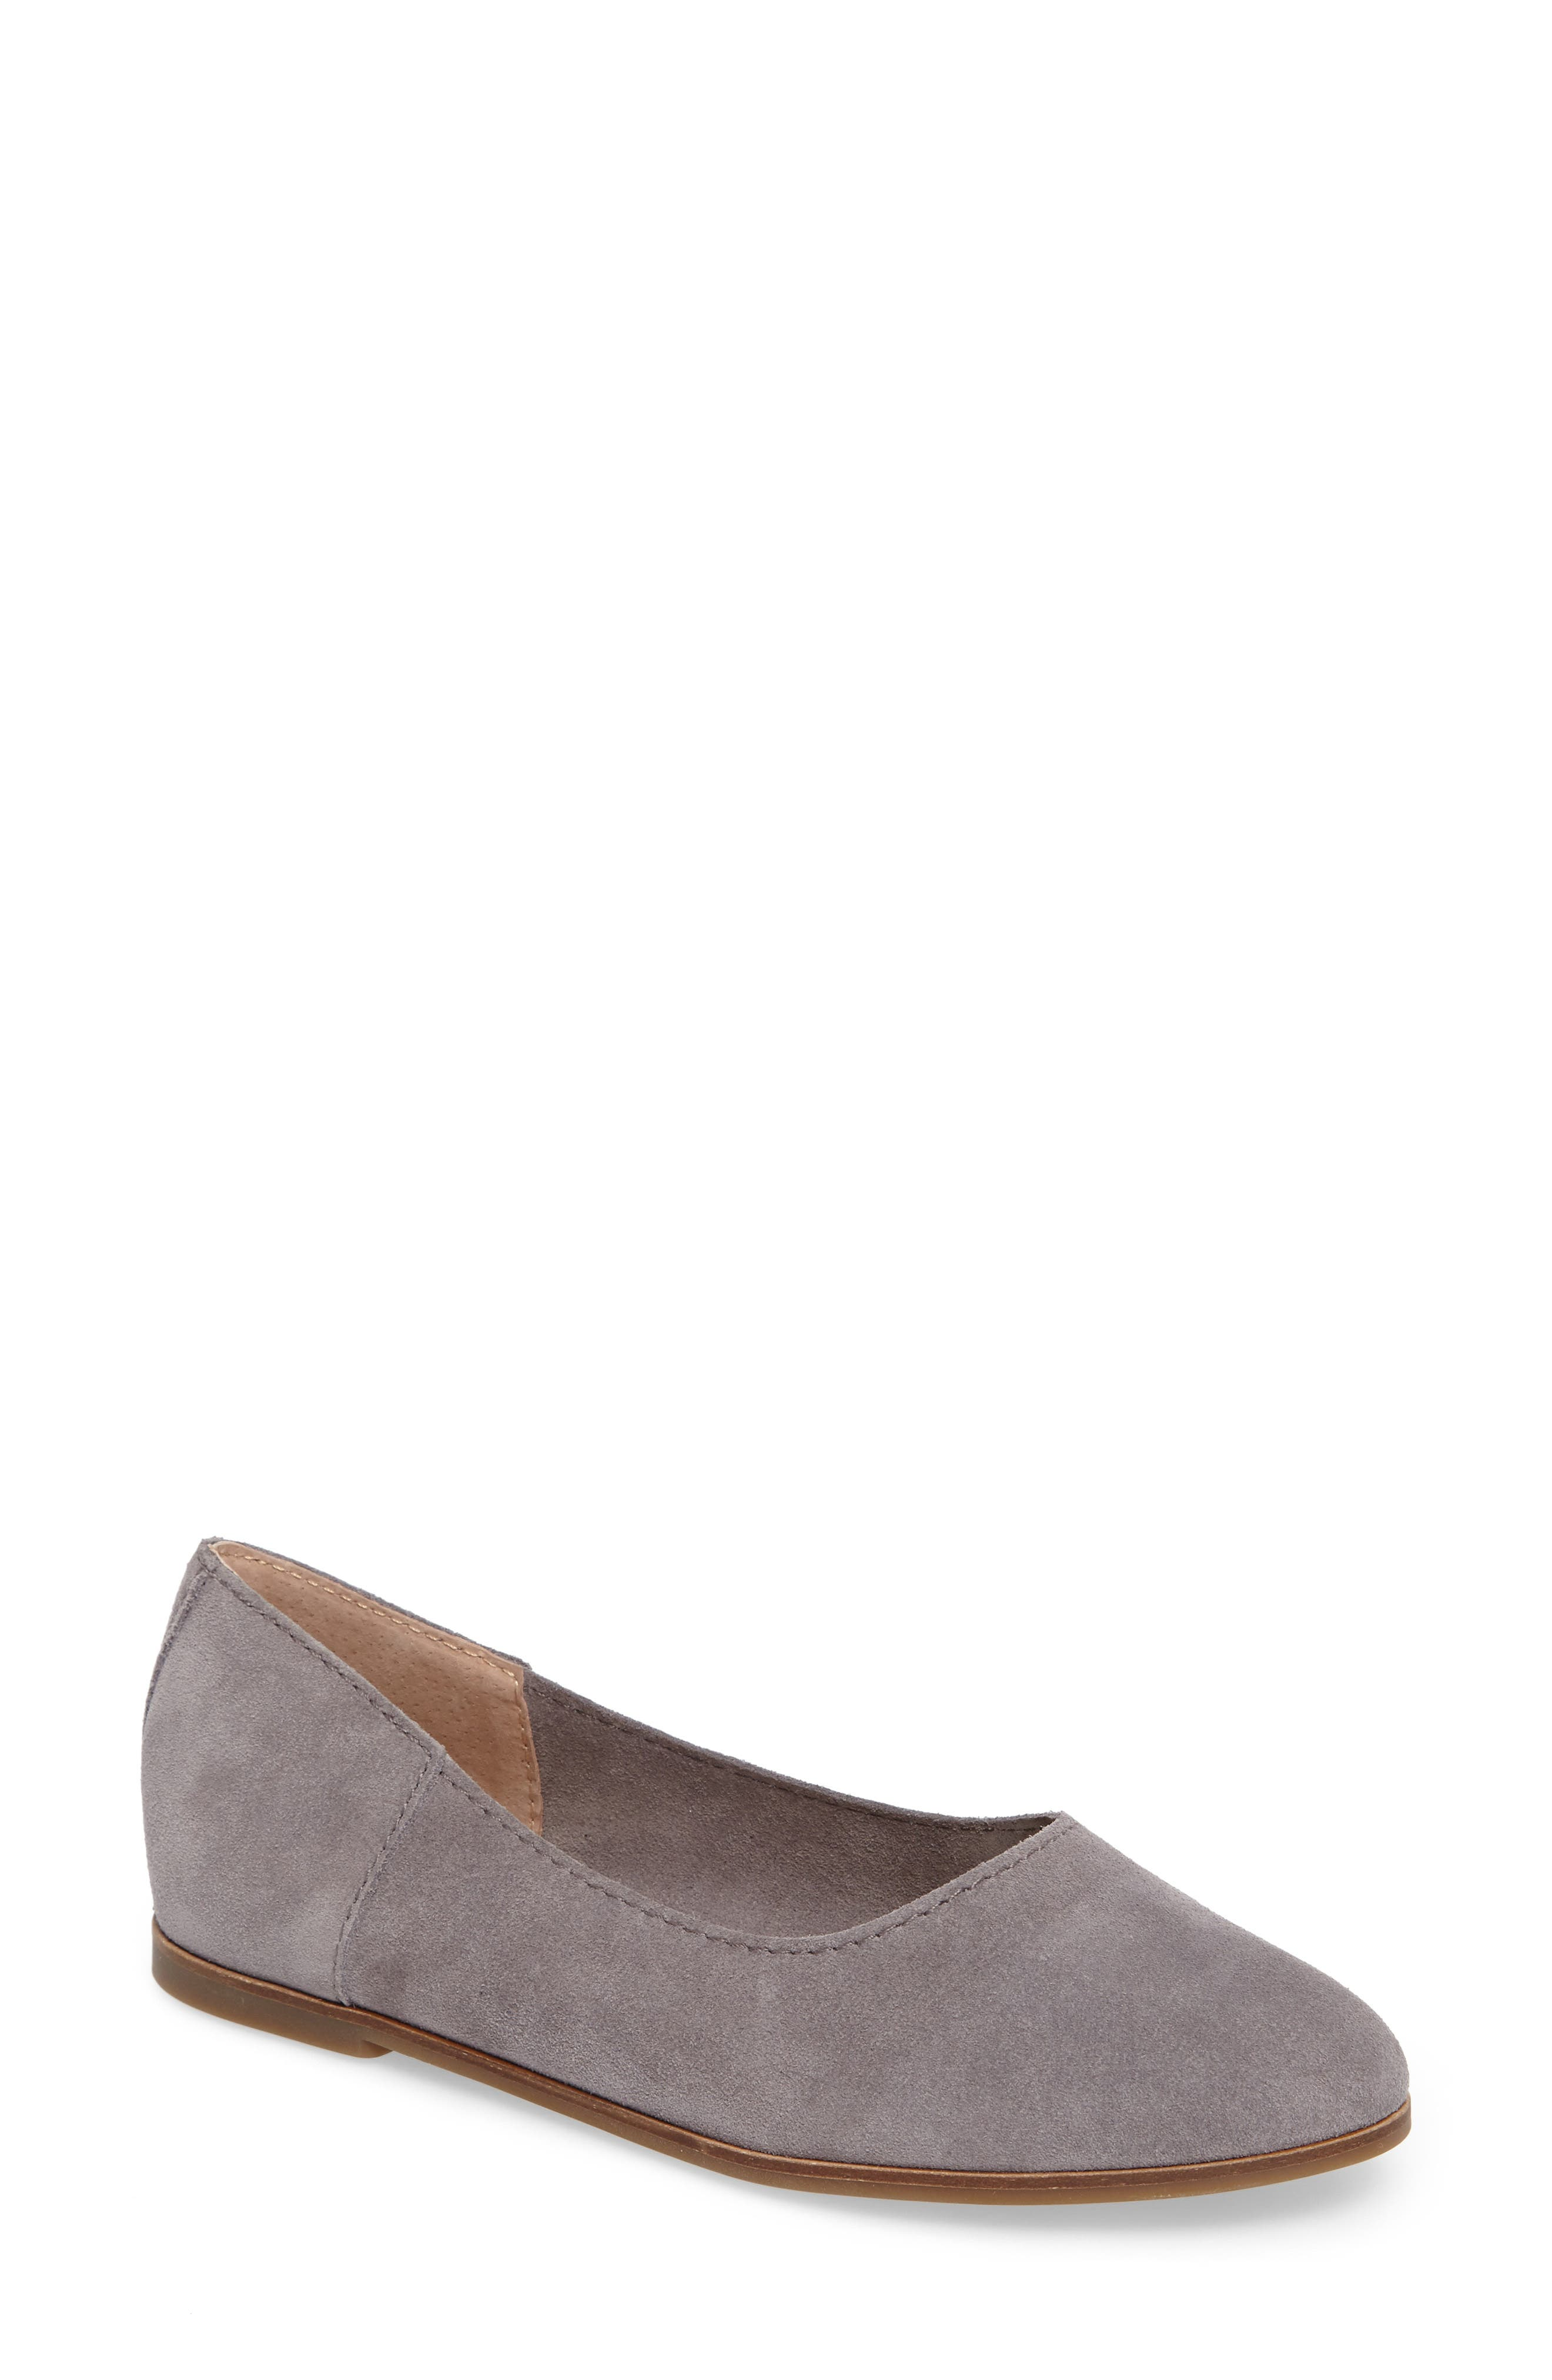 Calandra Flat,                             Main thumbnail 1, color,                             Steel Grey Suede